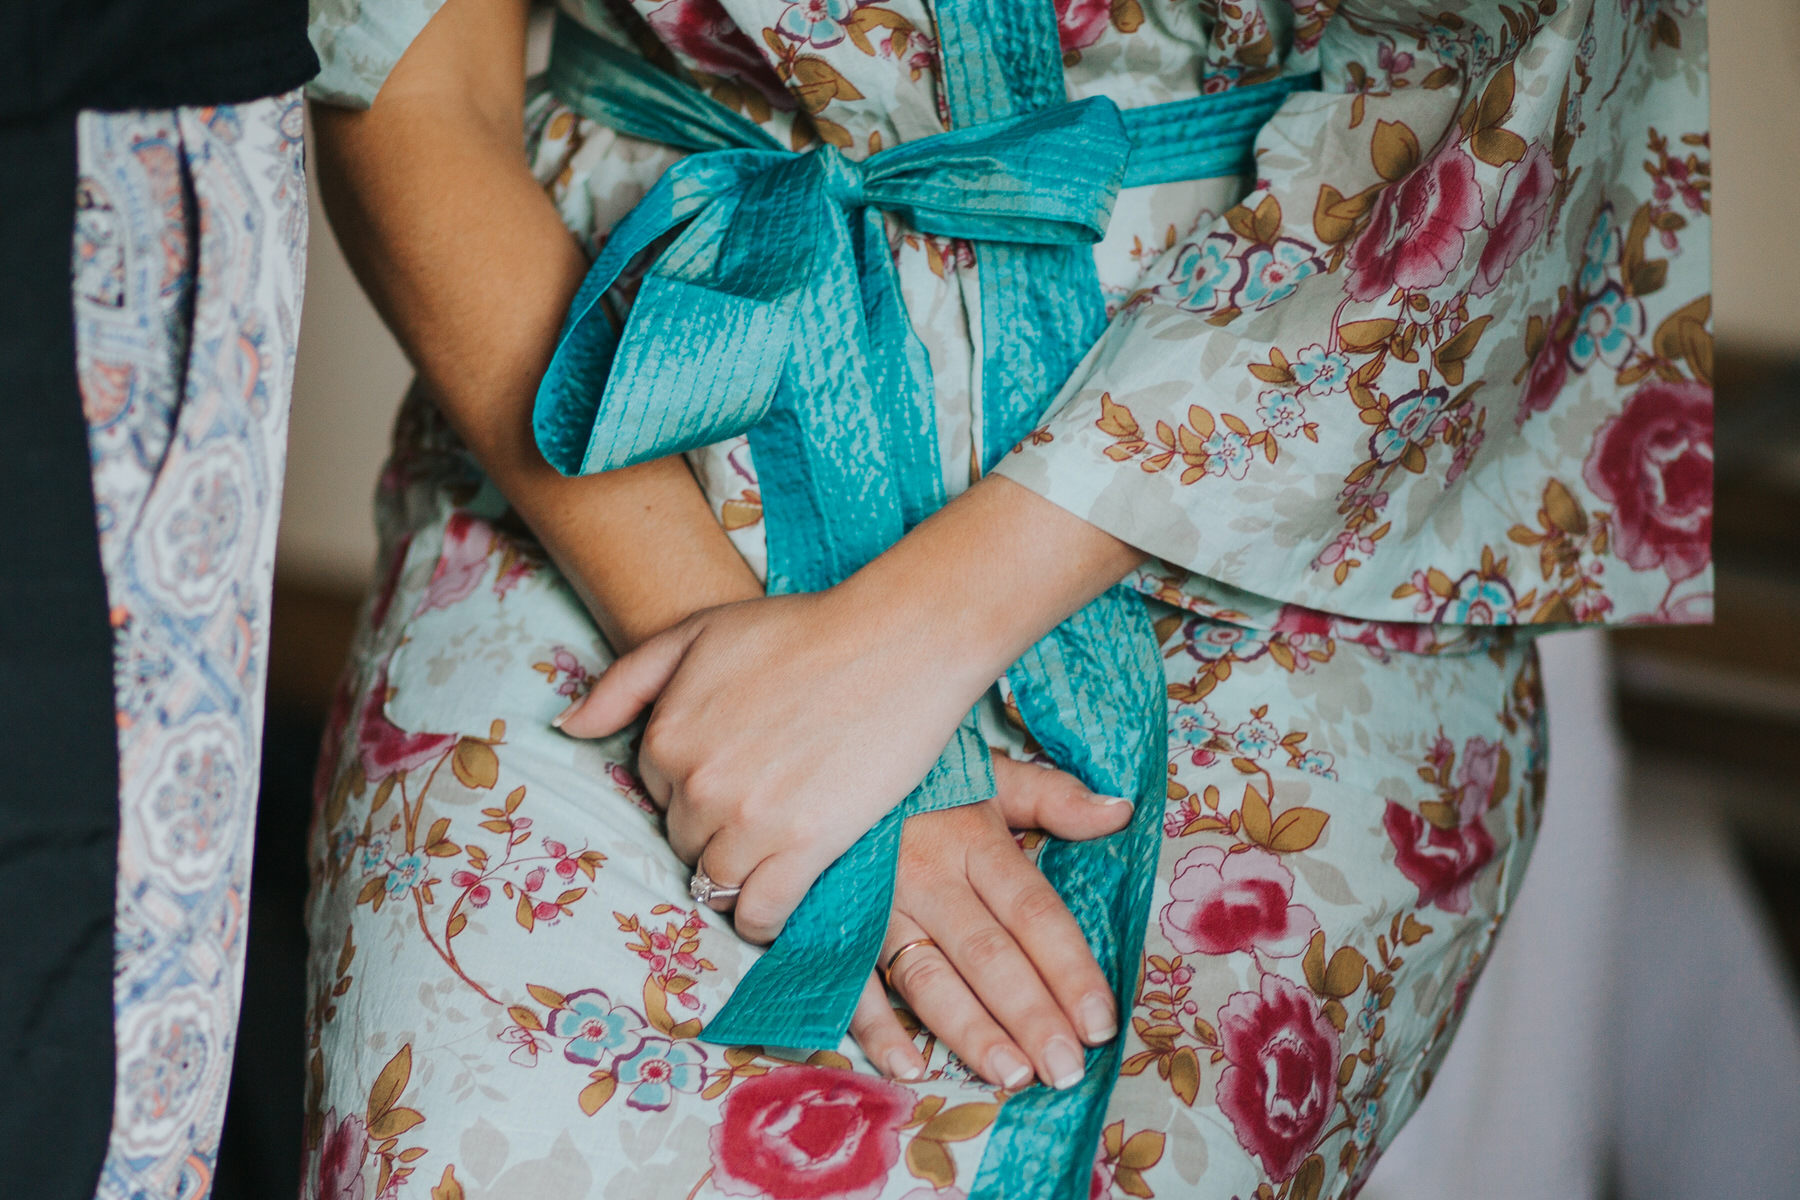 54 brides hands bridal prep still moment blue gown  Yolande De Vries Photography.jpg